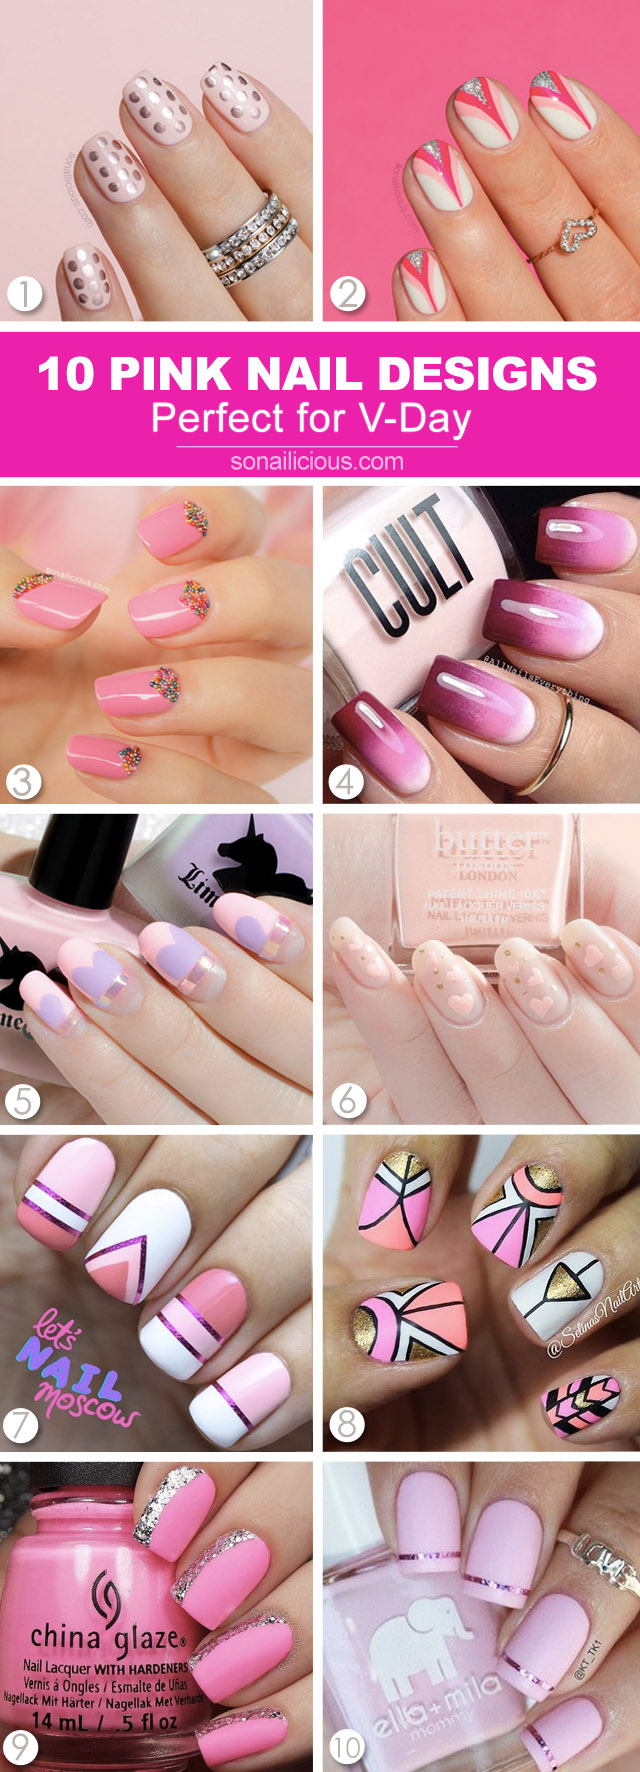 10 best pink nail designs, pink valentie's day nails